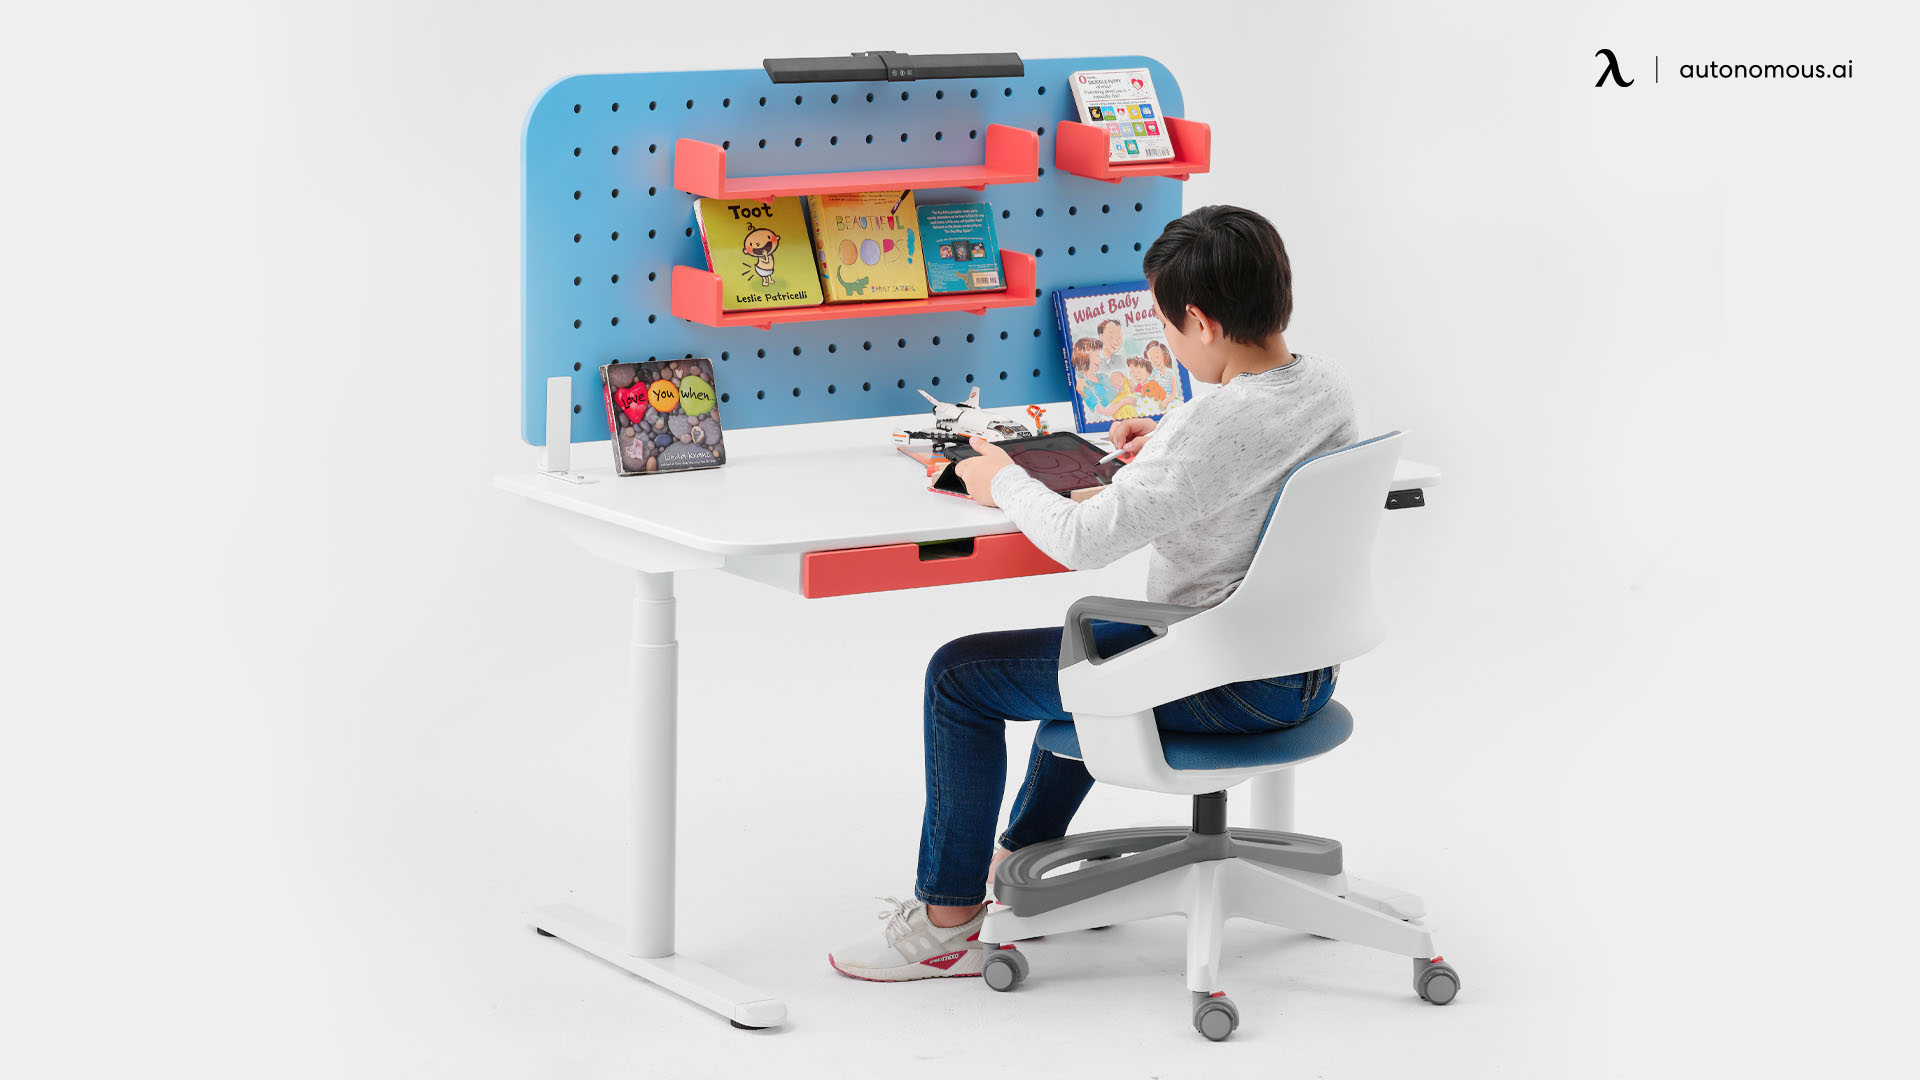 How To Find The Best Desk Model?